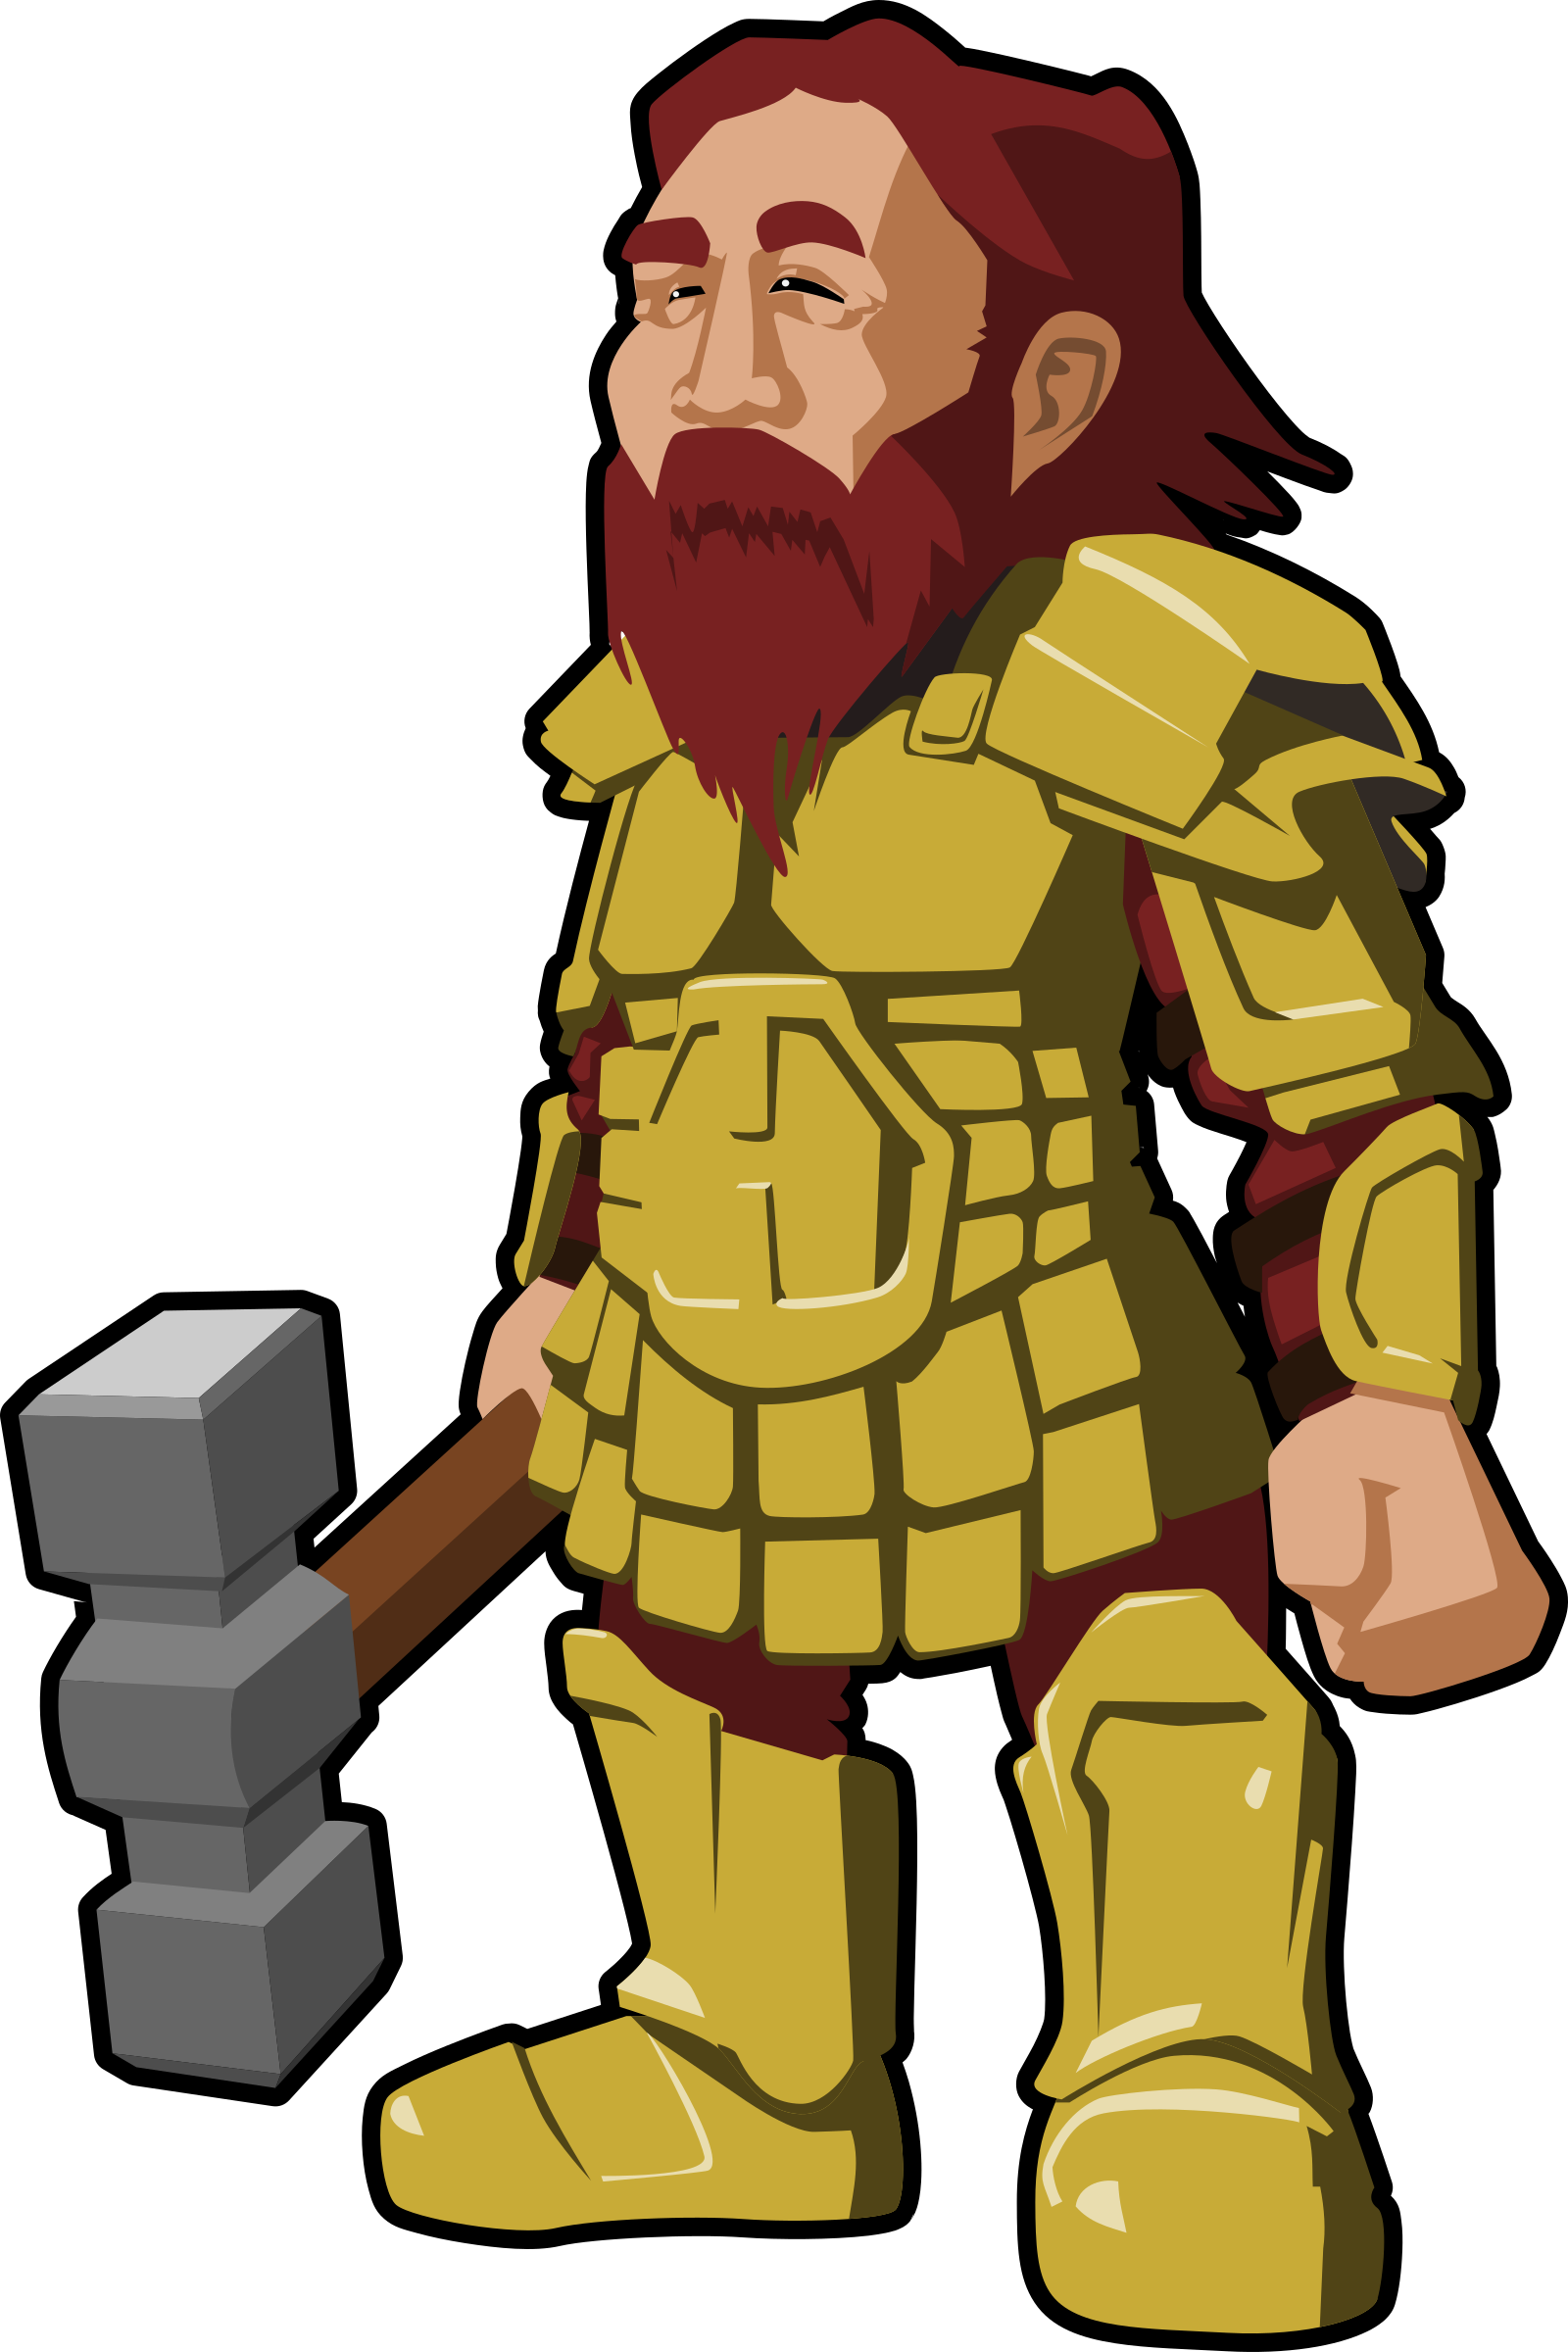 Warrior clipart icon. Dwarf big image png